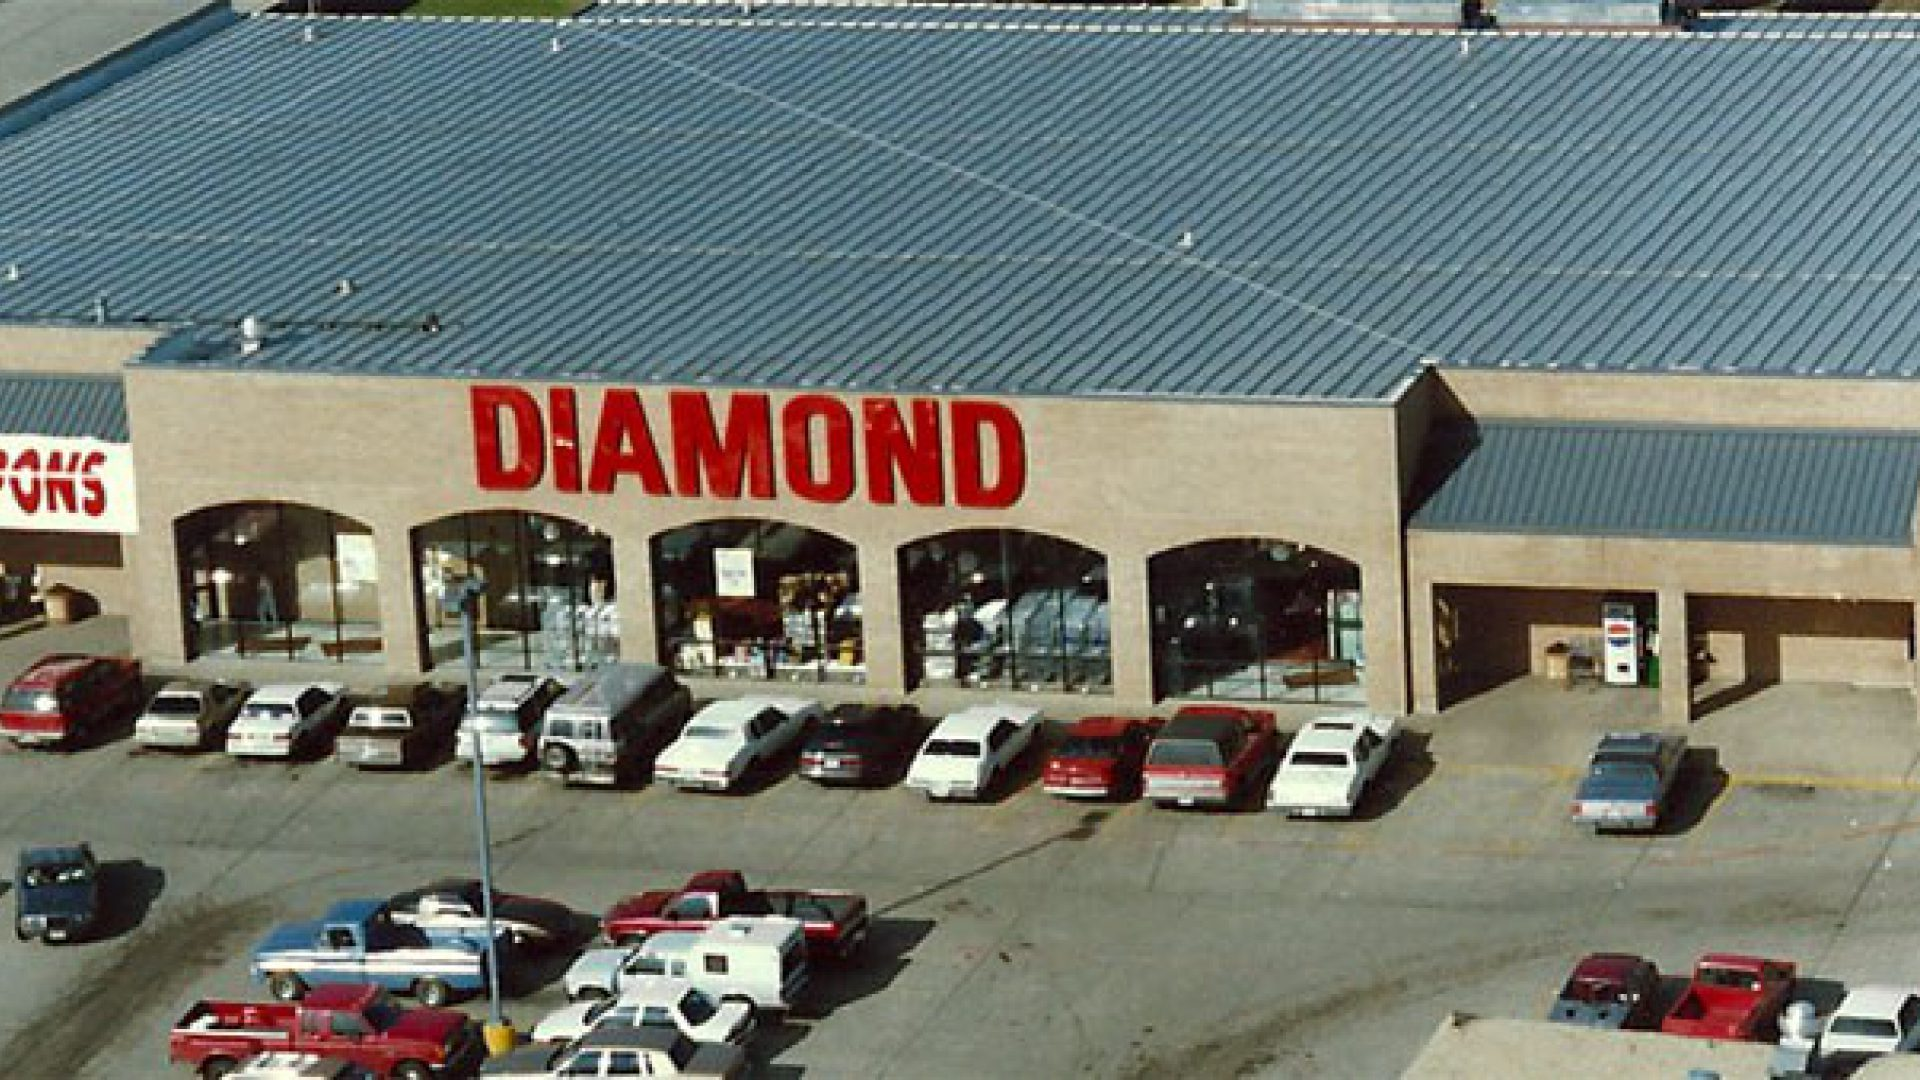 Property: Diamond Food Store